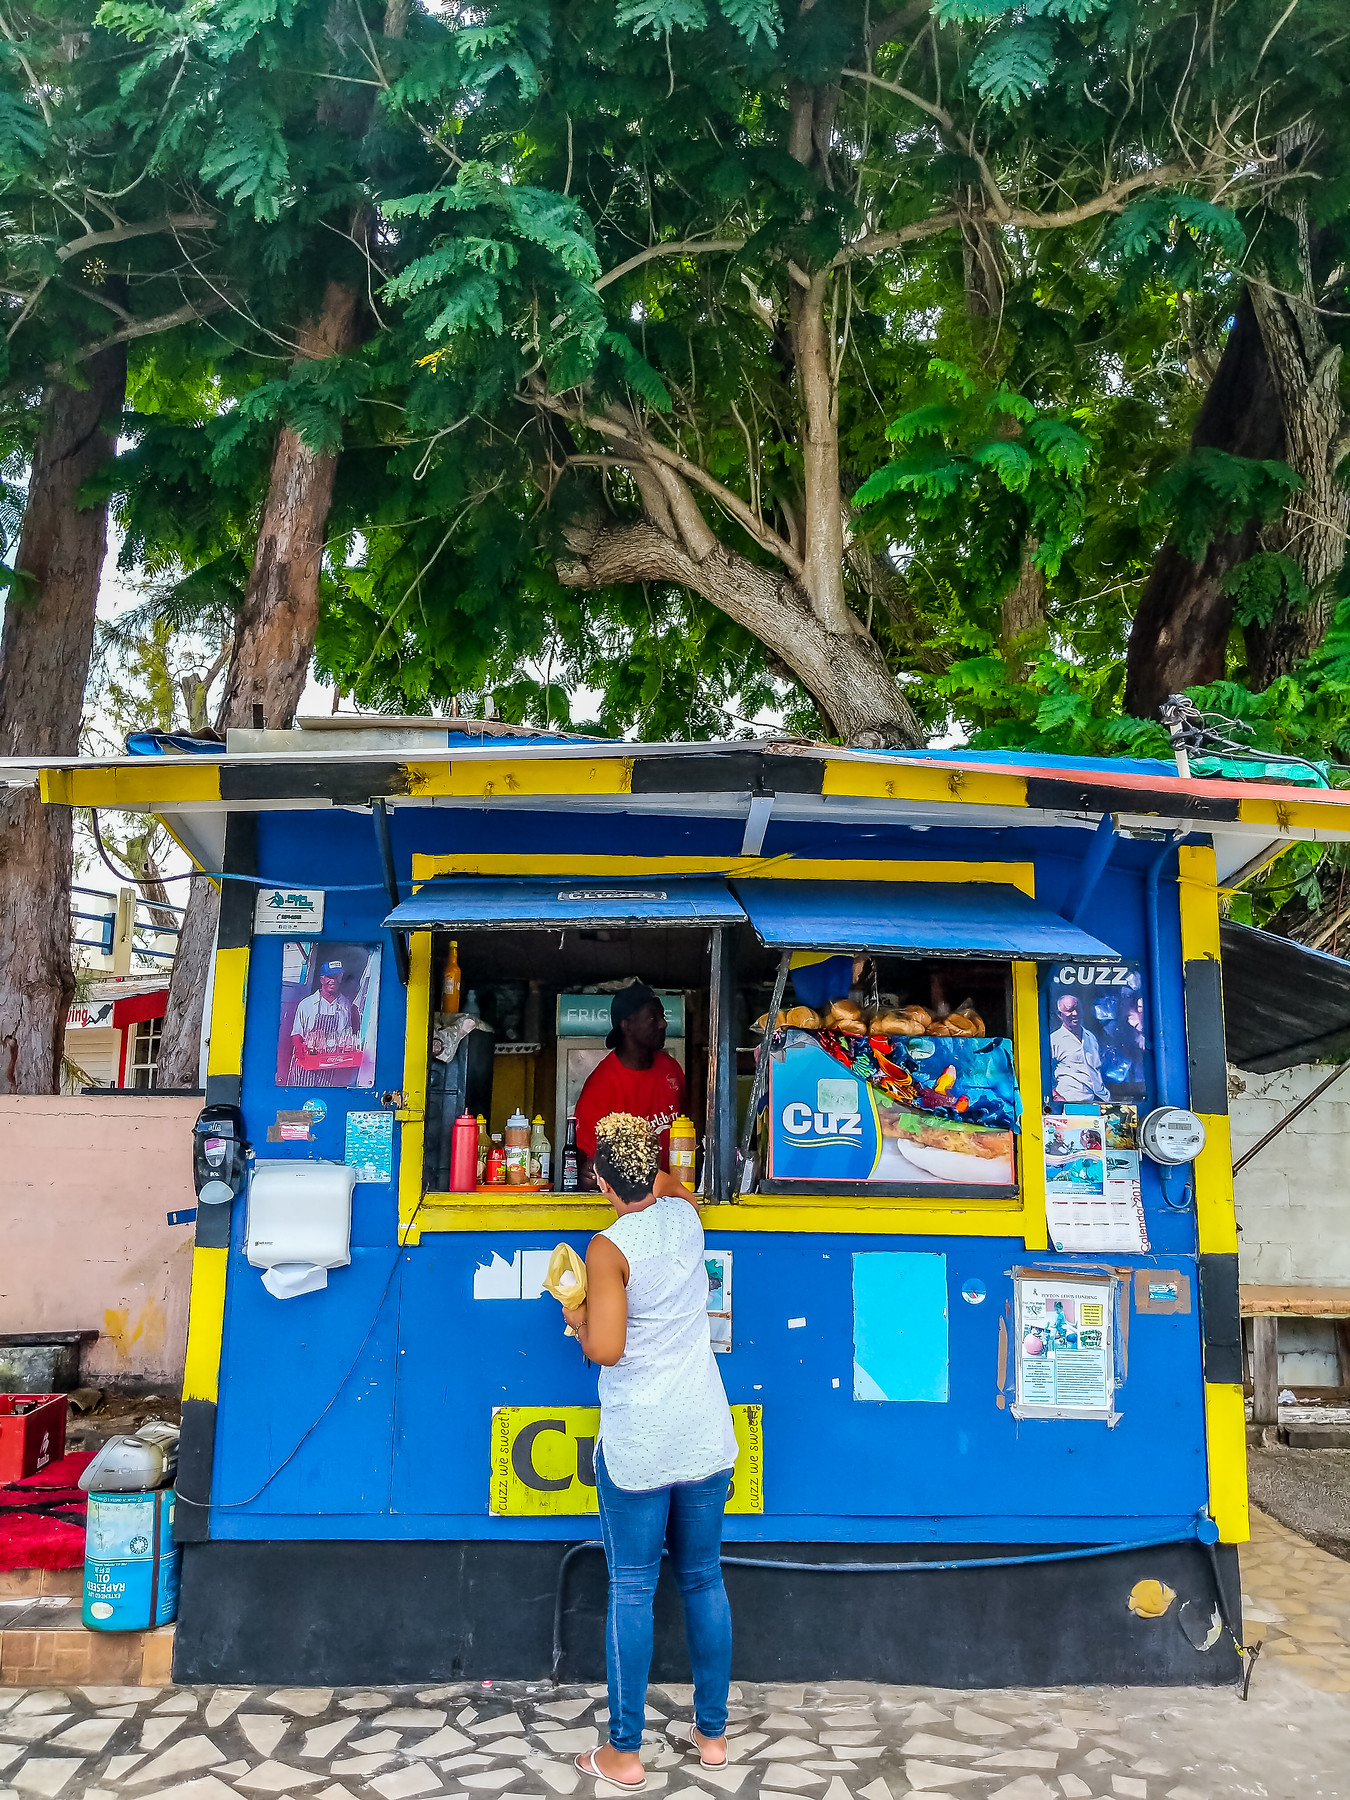 The best Barbados restaurants include Cuz's fish shack just off the beach where you can get a fish cutter and banks beer.